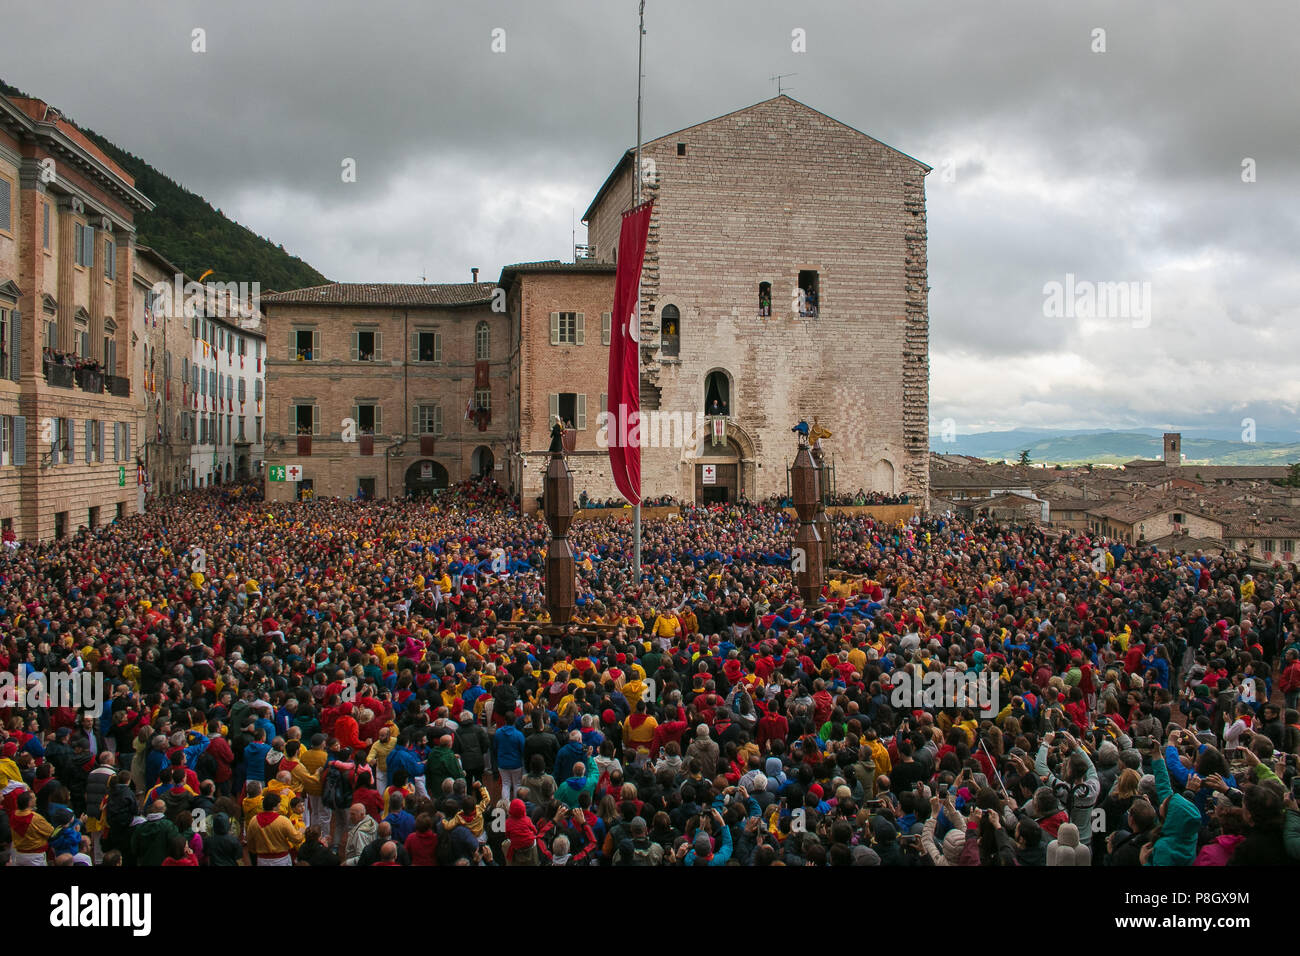 a53cda81 GUBBIO, ITALY - MAY 15, 2018: The famous festa dei ceri with many